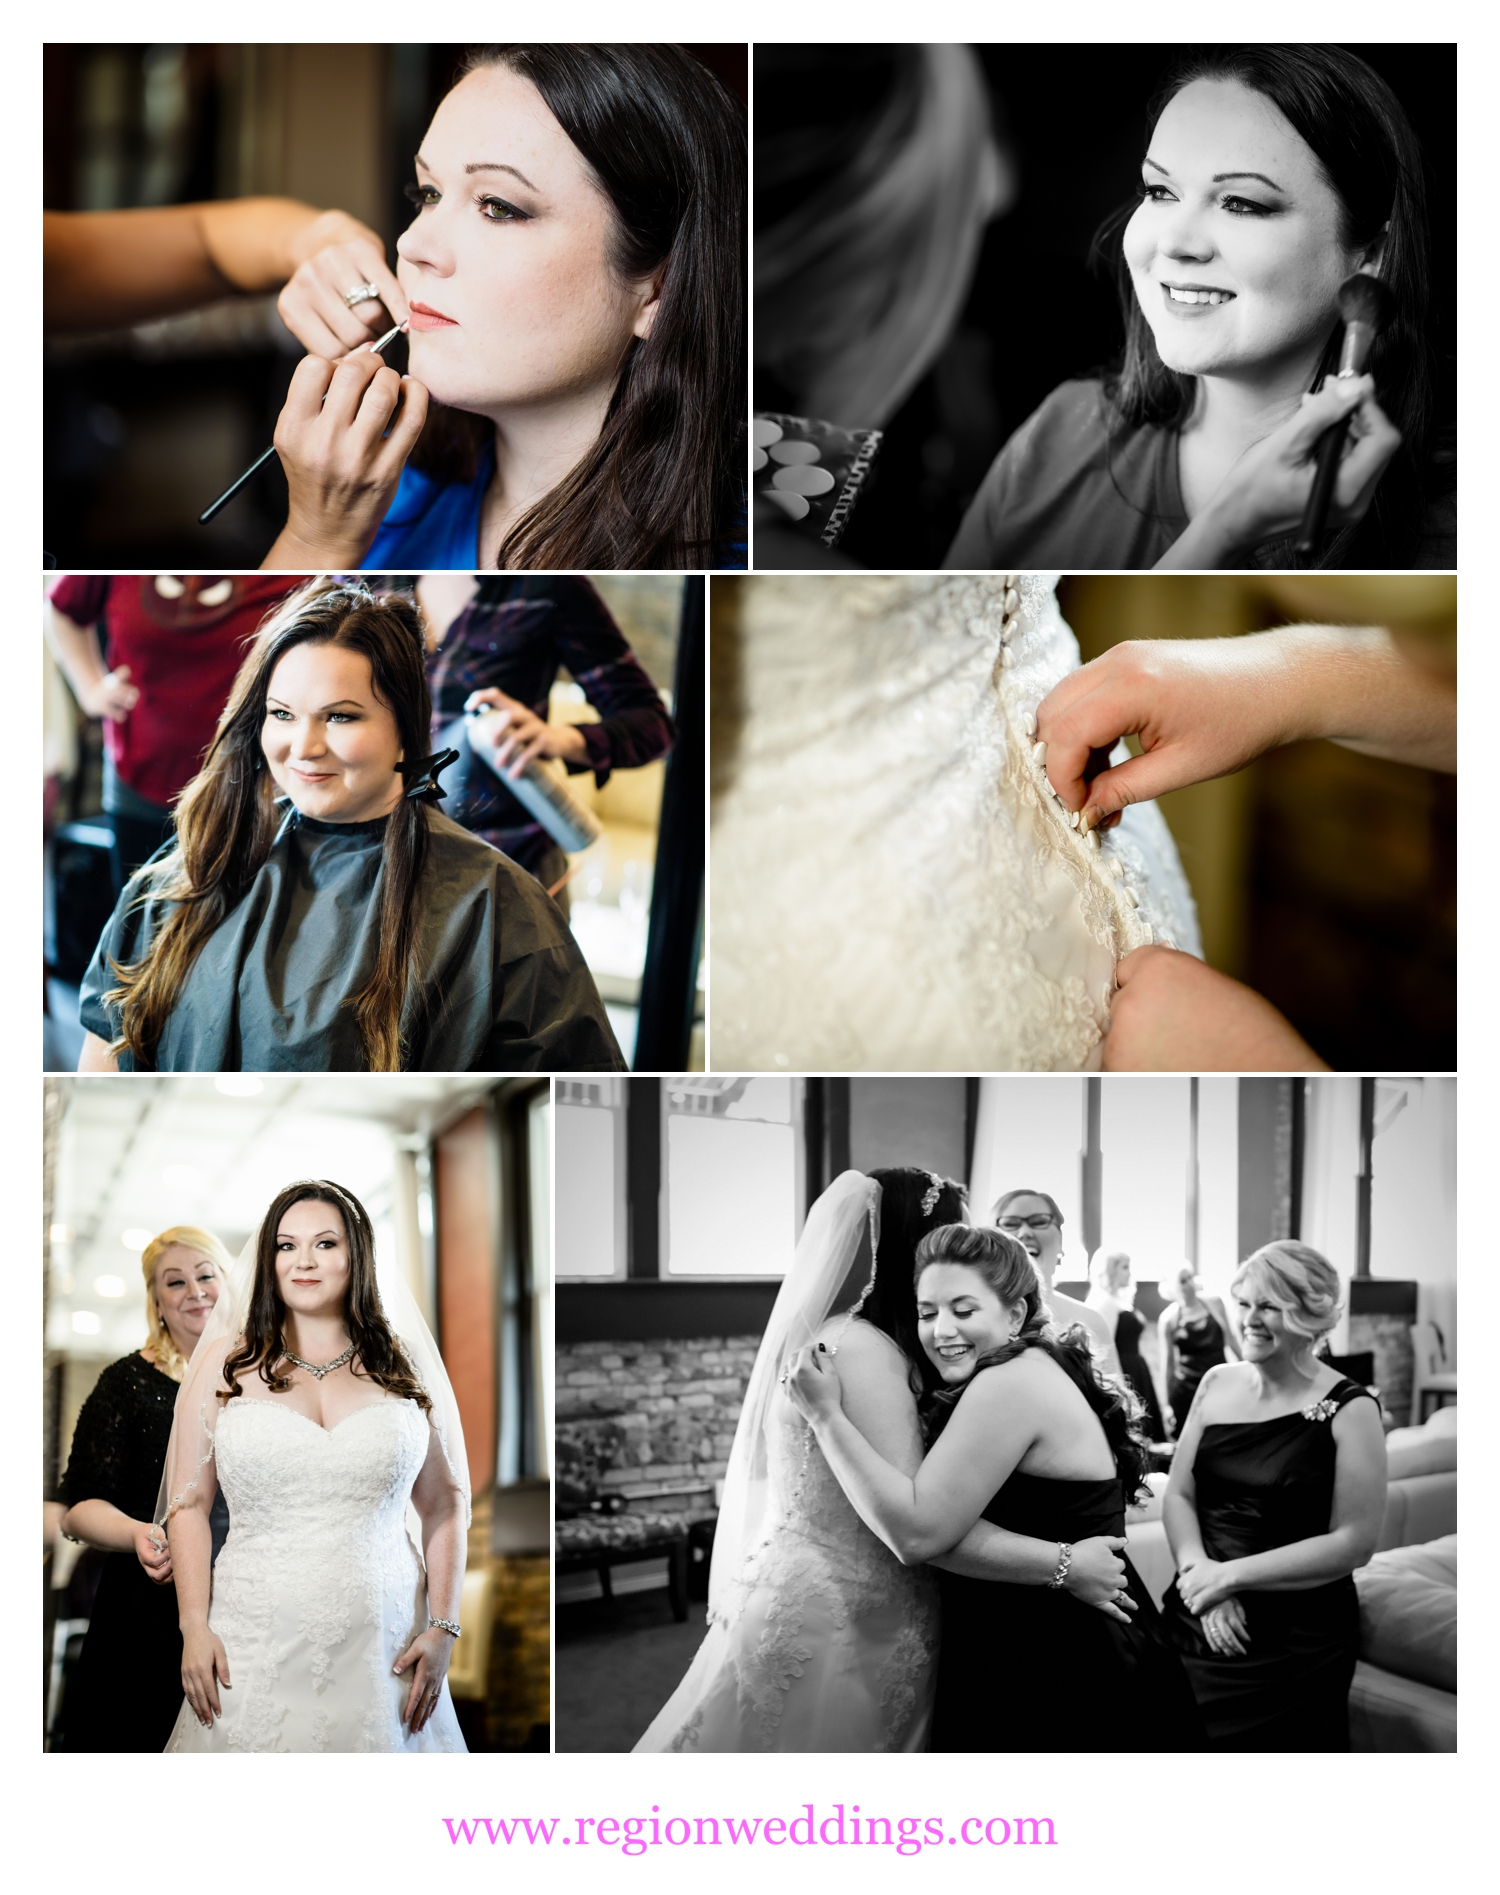 Bridal prep at The Allure in Laporte, Indiana.